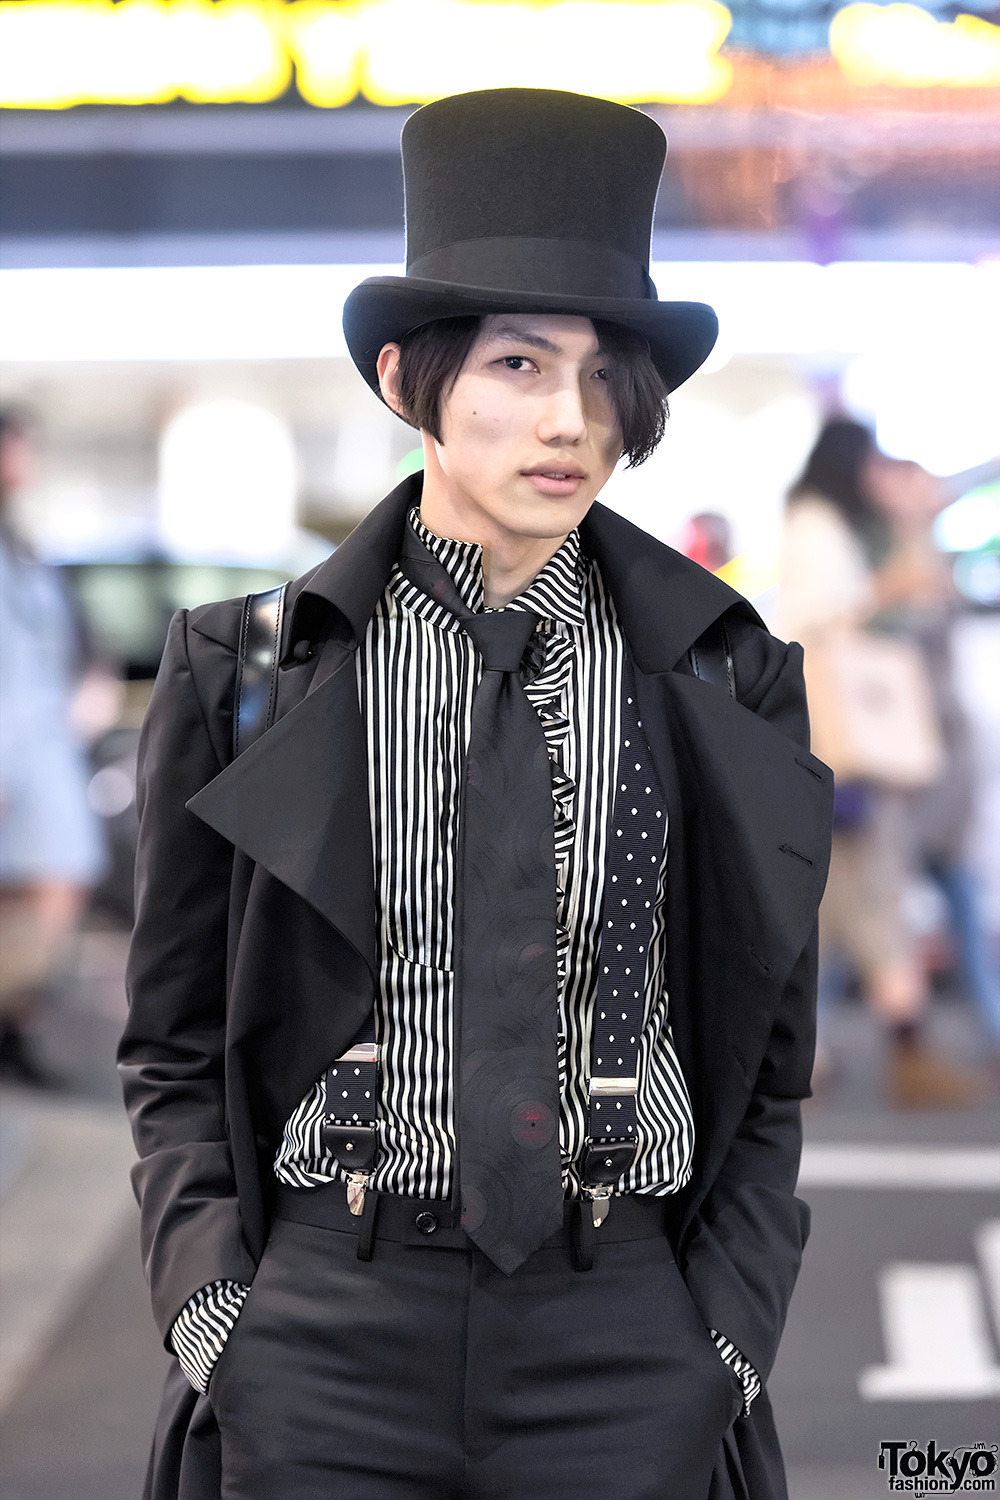 20 year old Japanese fashion student Gothmura on      Tokyo Fashion